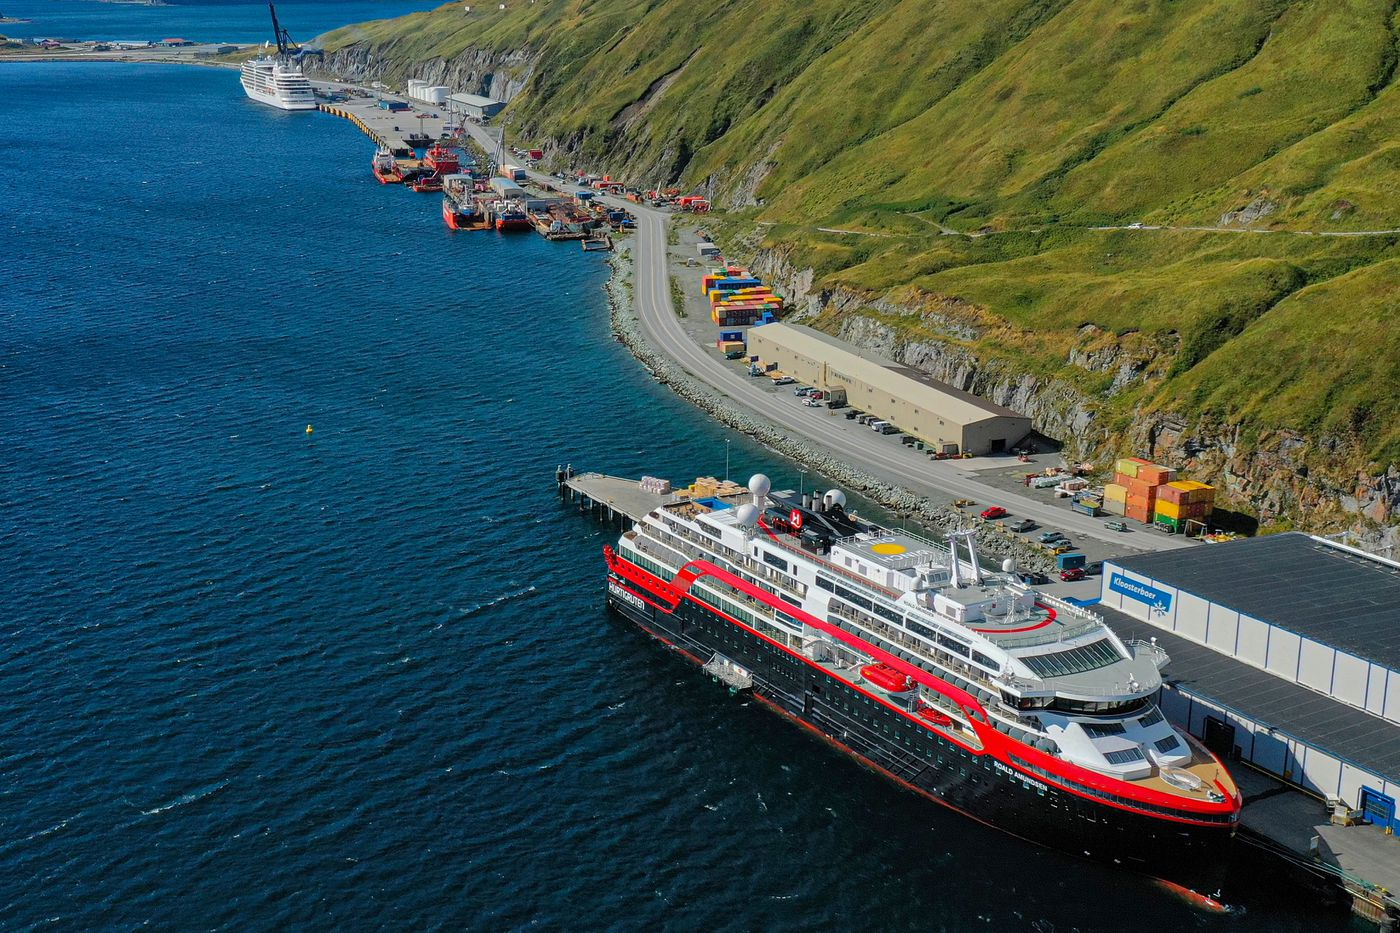 The Hurtigruten's Roald Amundsen cruise ship at dock in Unalaska, Sept. 15, 2019. (Andy Dietrick / Aleutian Aerial) ONE TIME USE